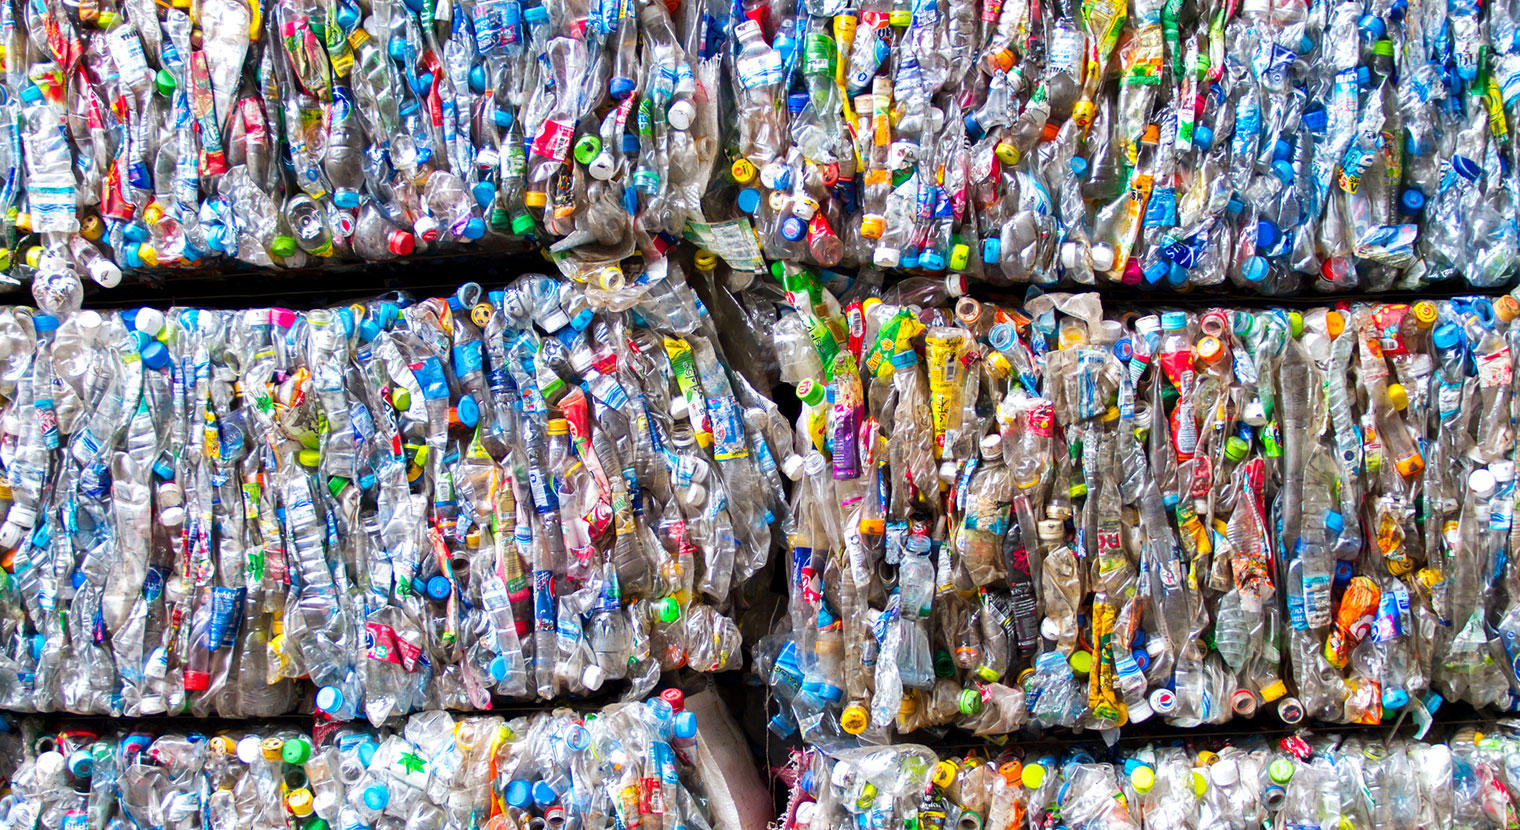 What to do with the world's plastic waste?